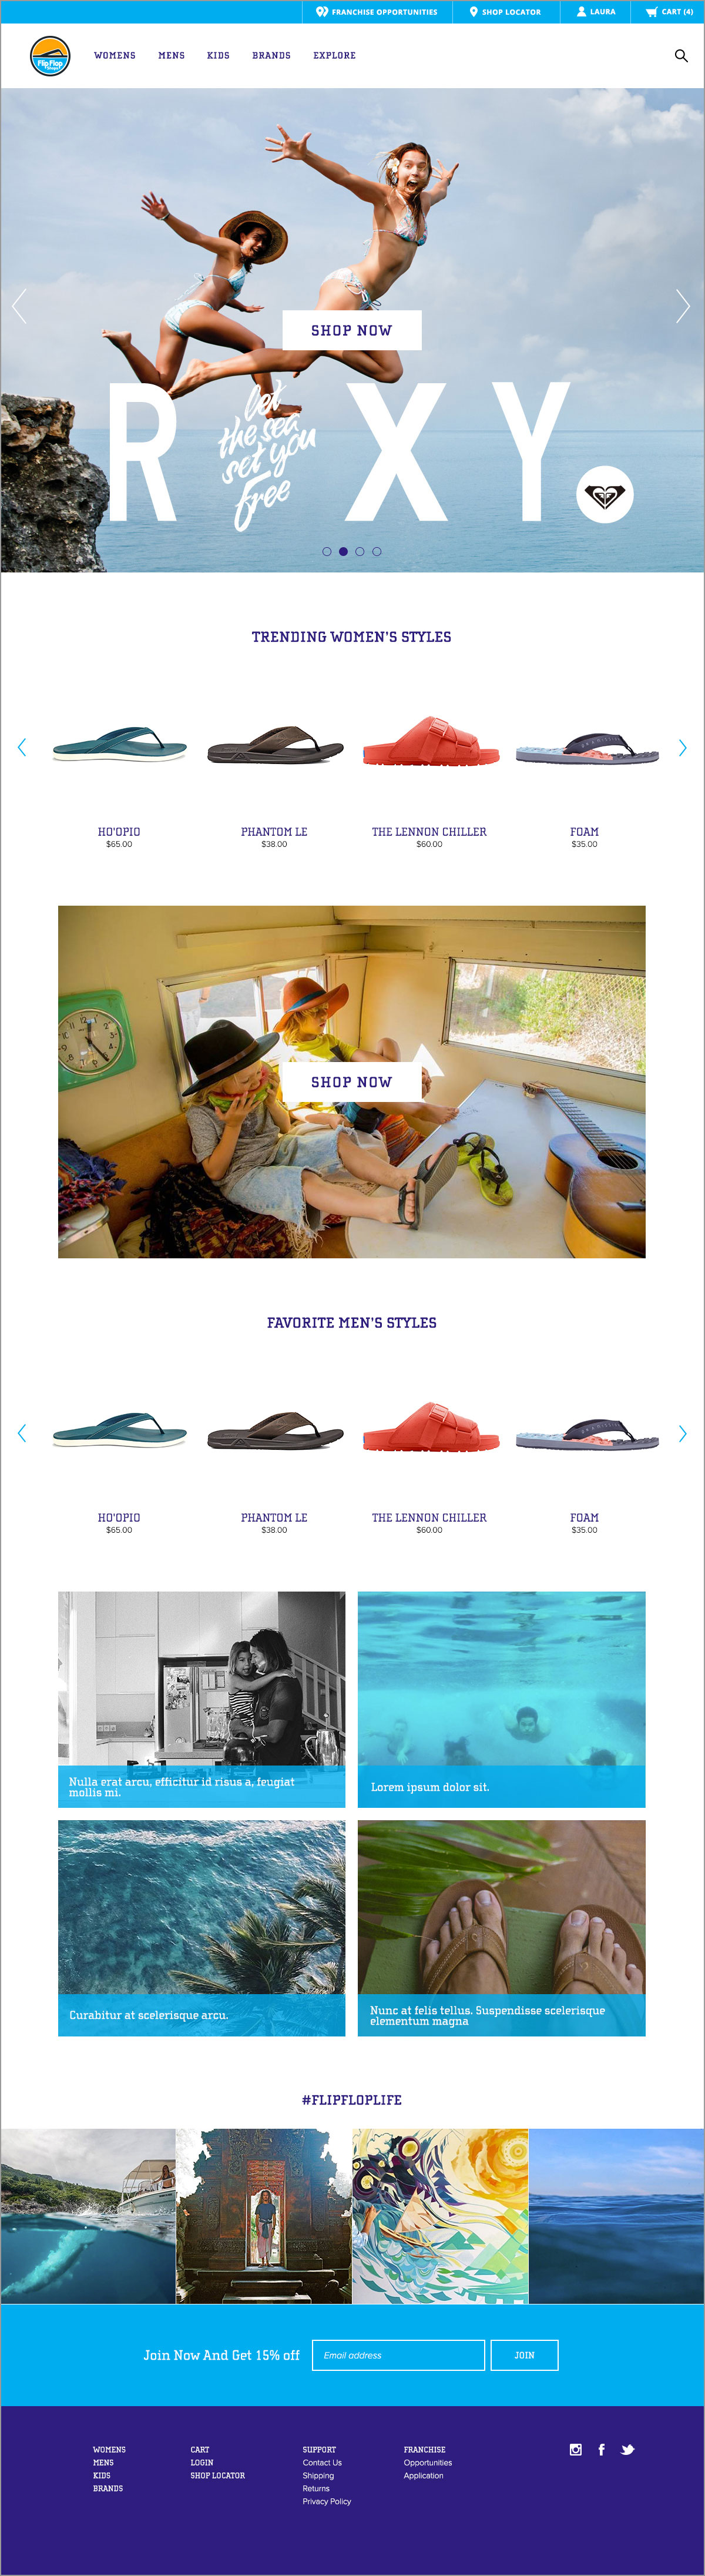 Flip Flop Shop home page example